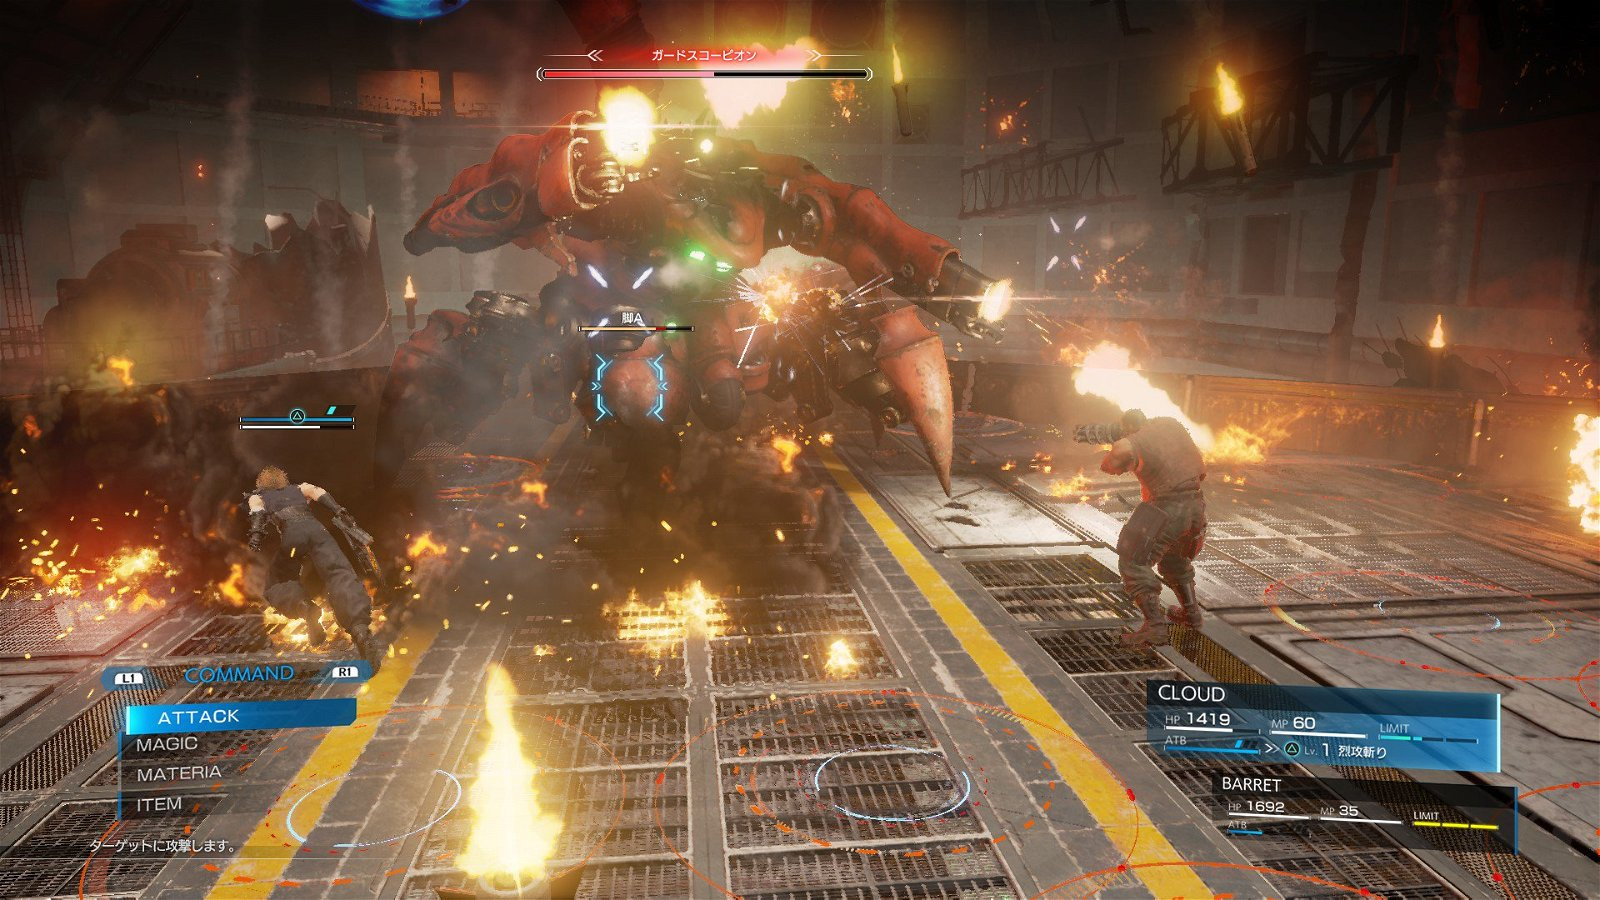 Final Fantasy VII Remake's Battles Won't Be Command-Based, But Action-Based